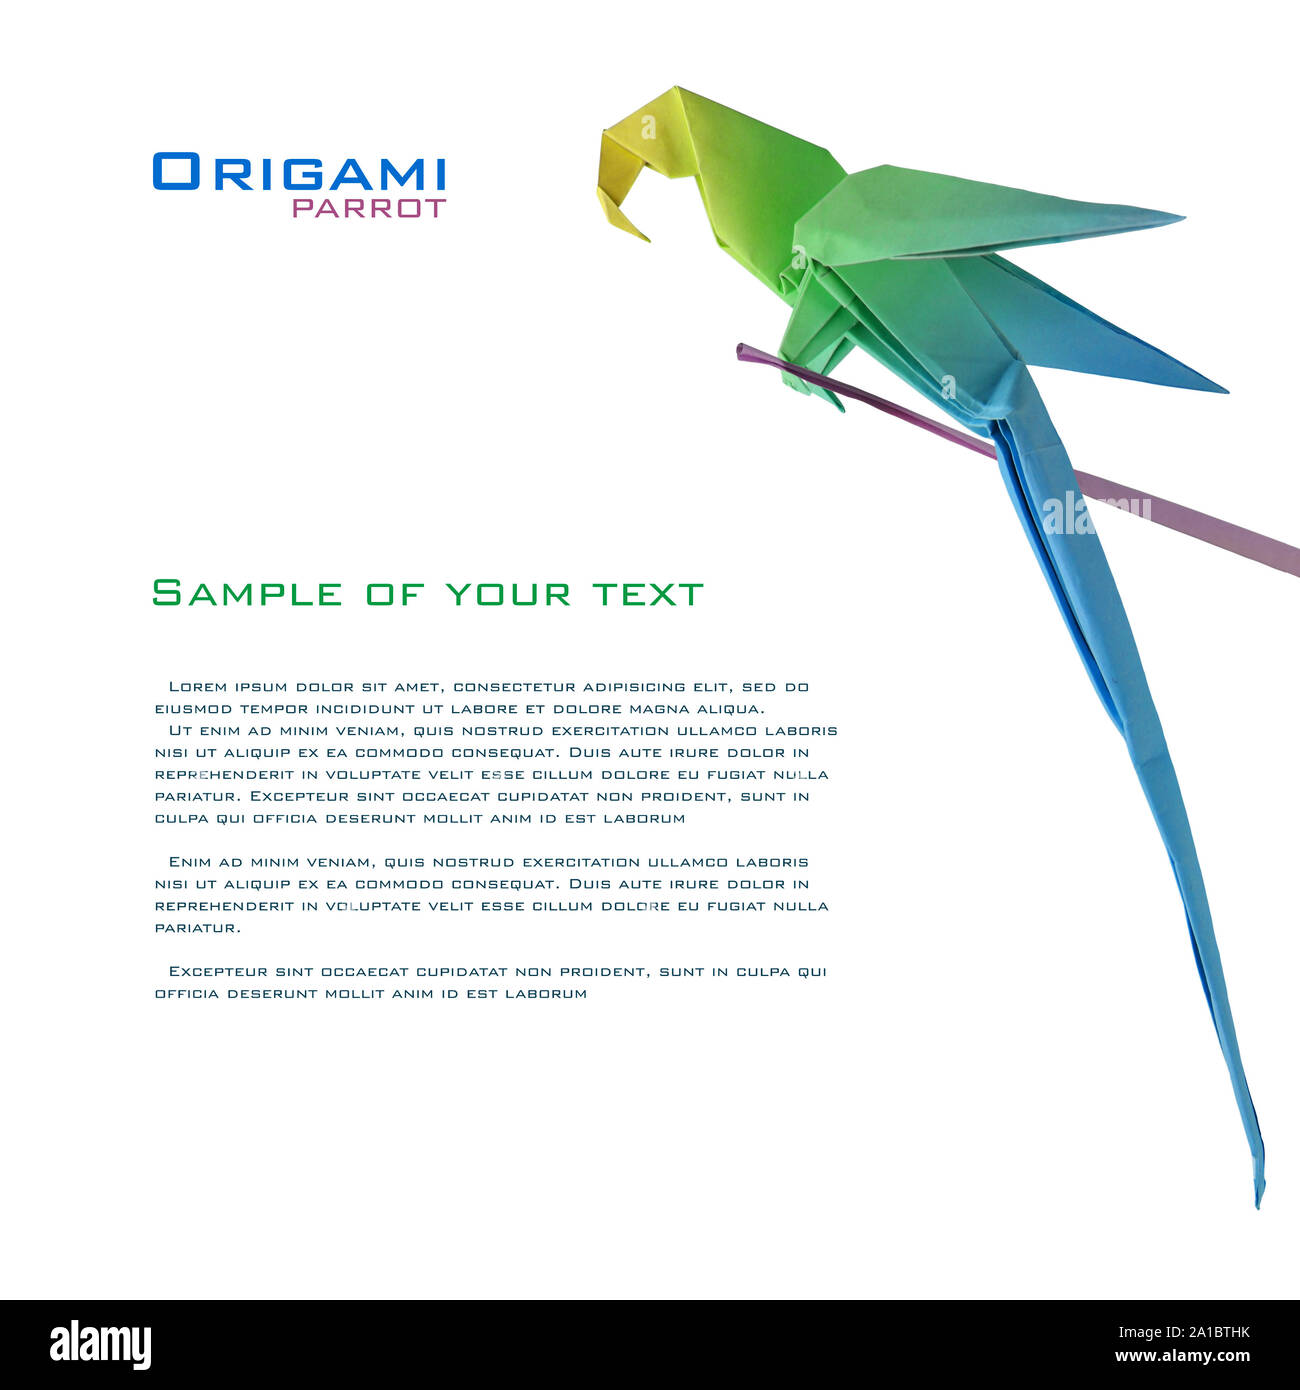 How to Make an Easy Origami Parrot | 1390x1300